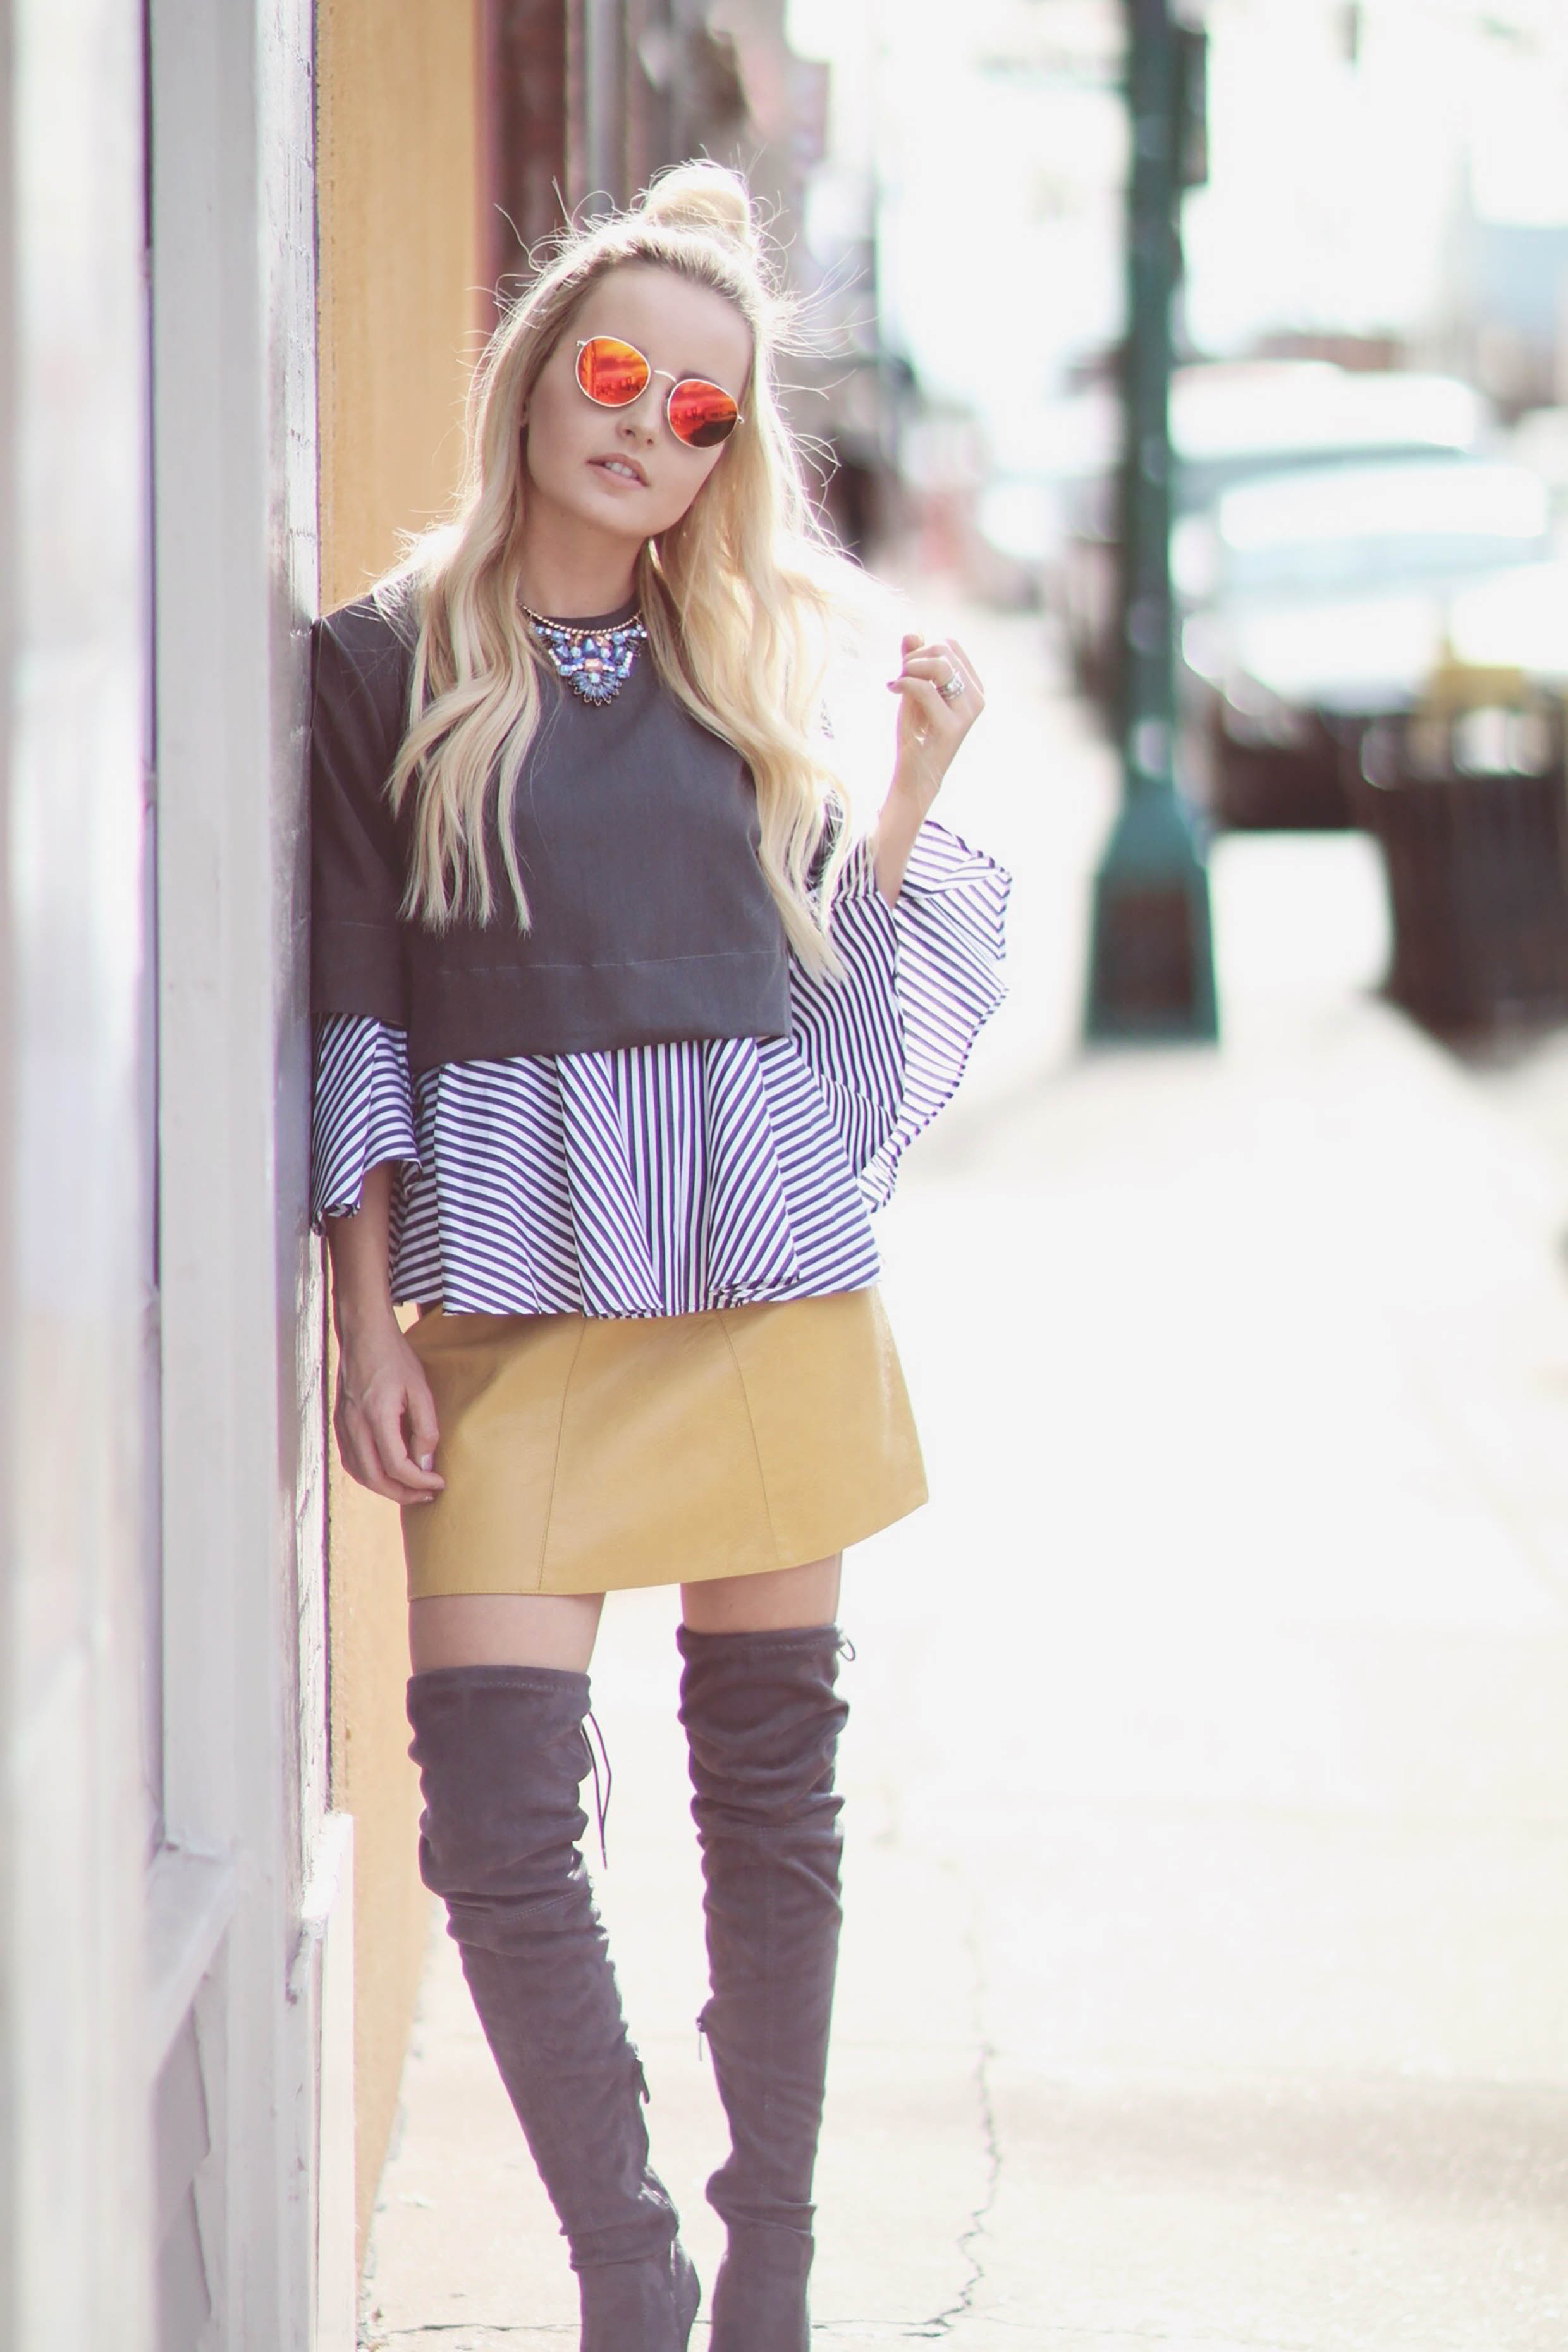 Alena Gidenko of modaprints.com shares tips on styling over the knee boots